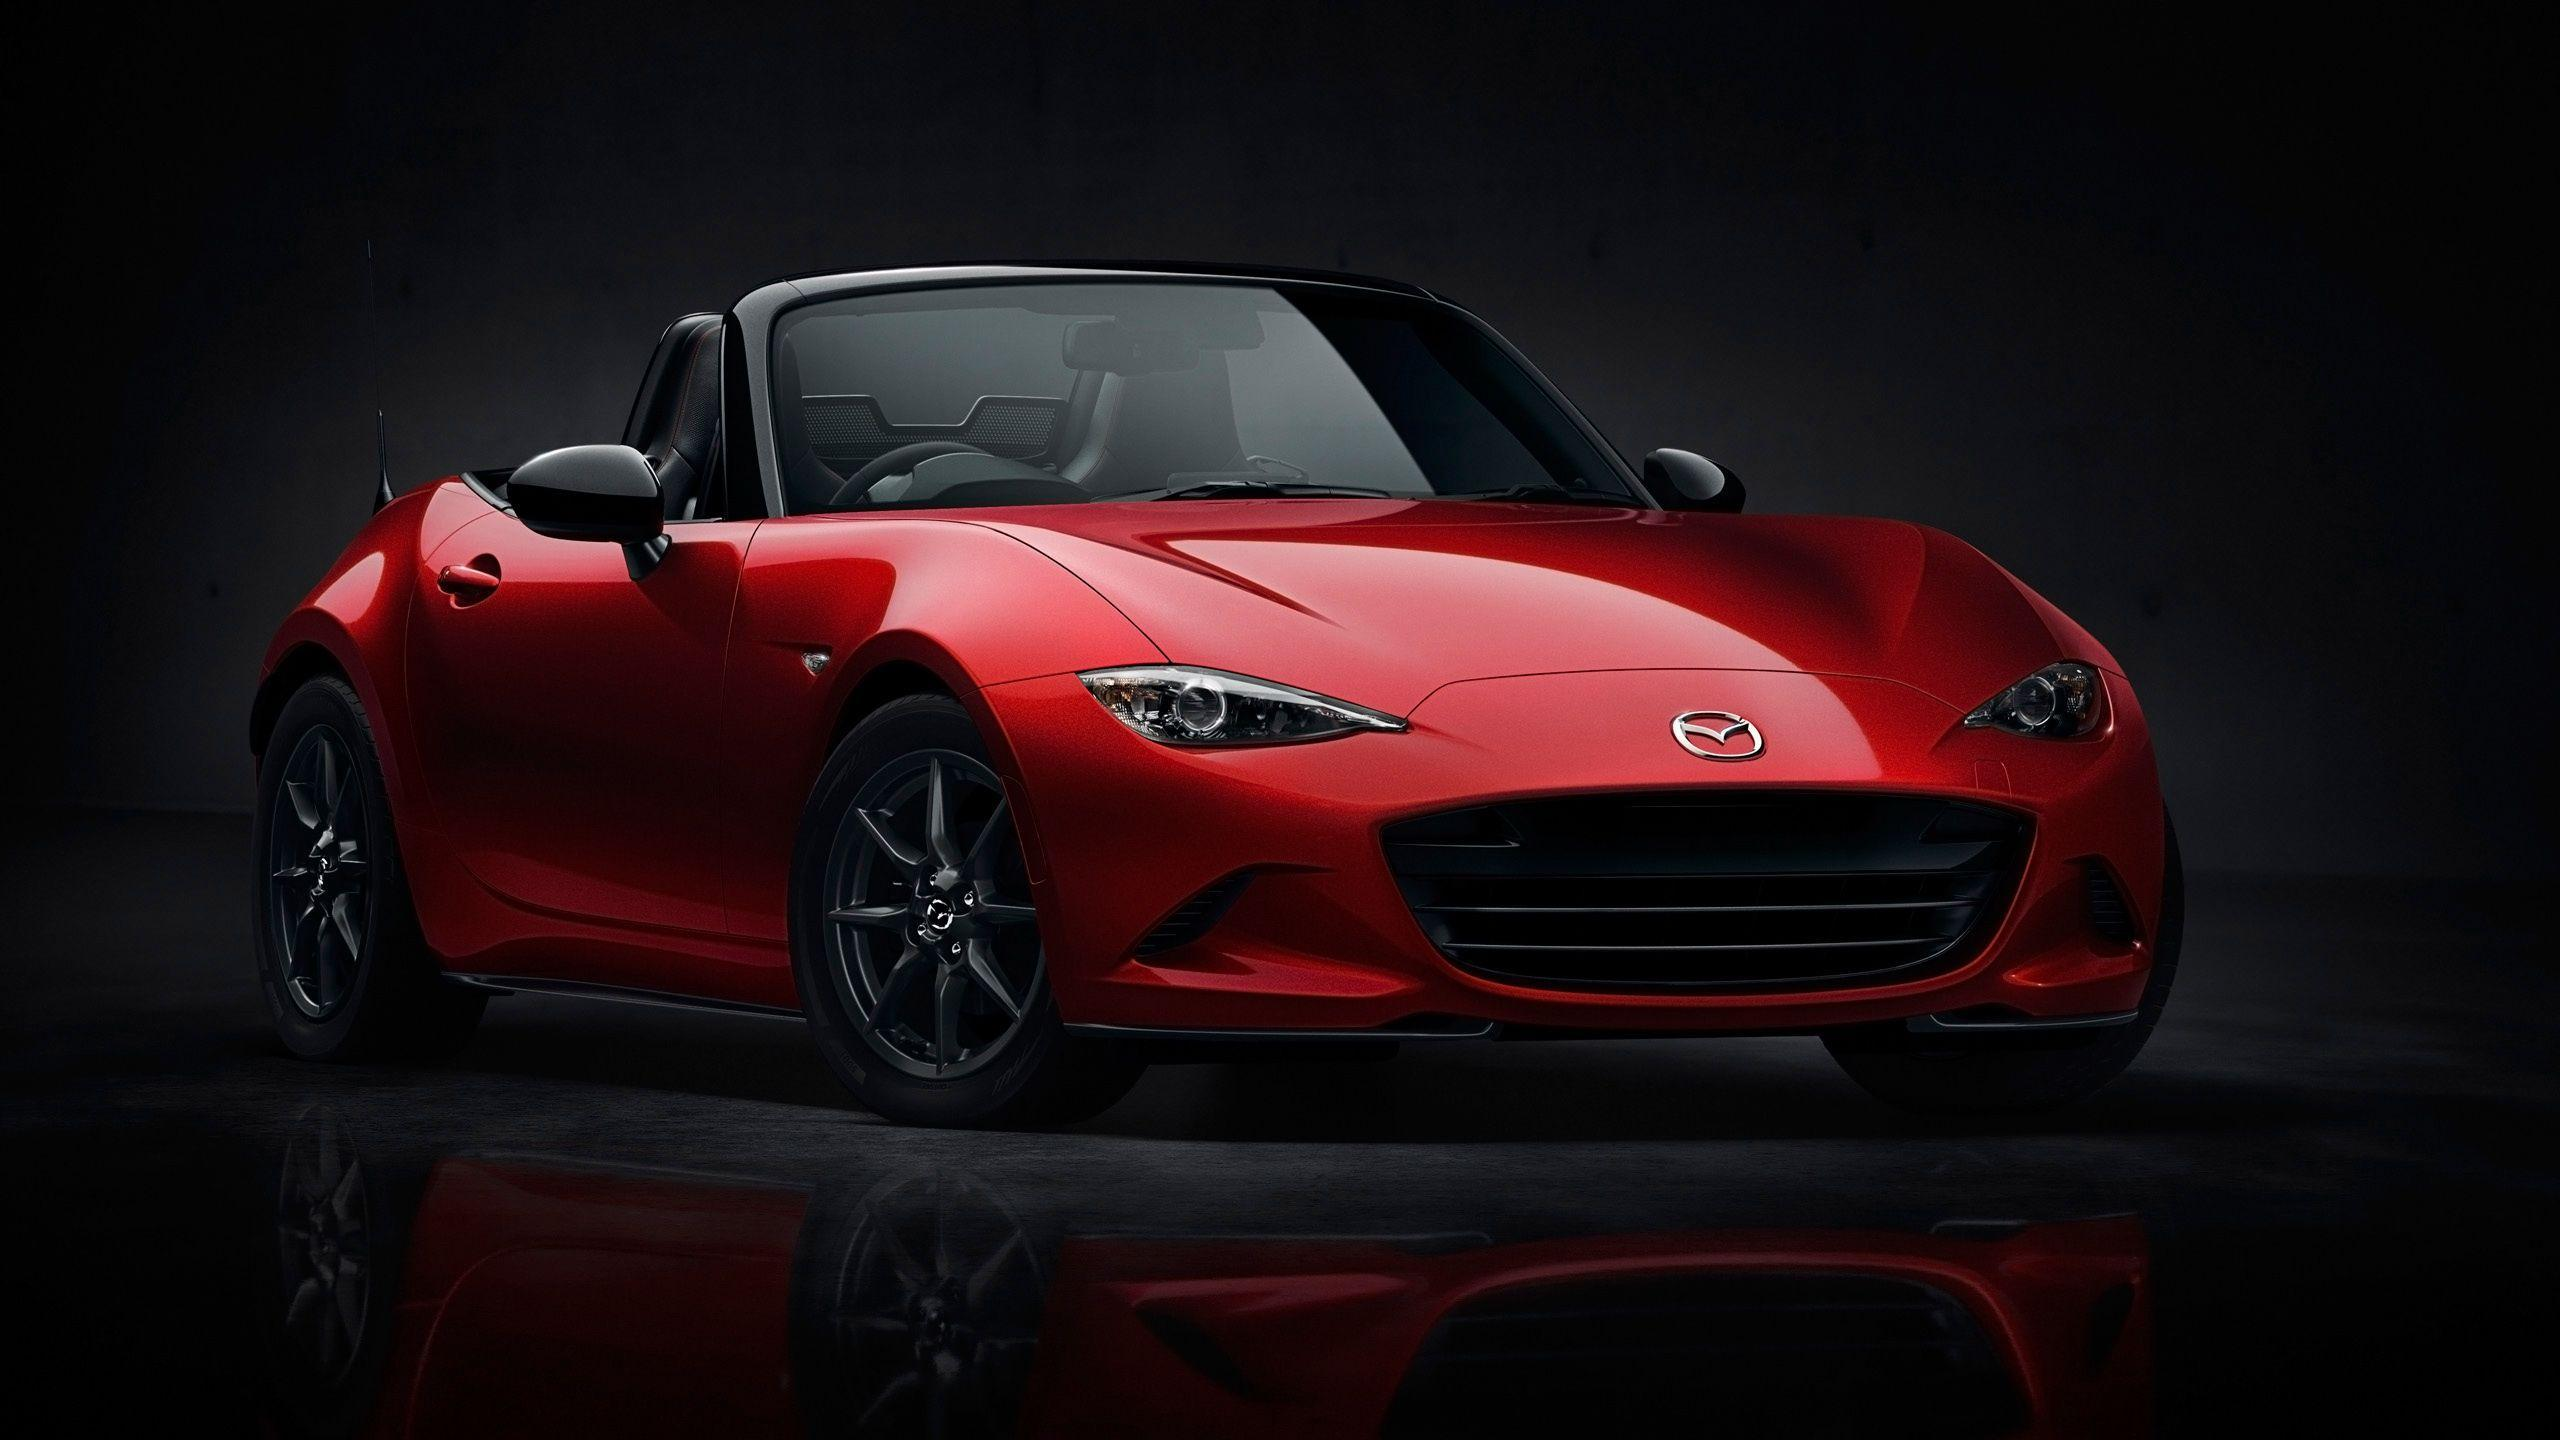 Mazda Mx 5 Miata Wallpapers Wallpaper Cave